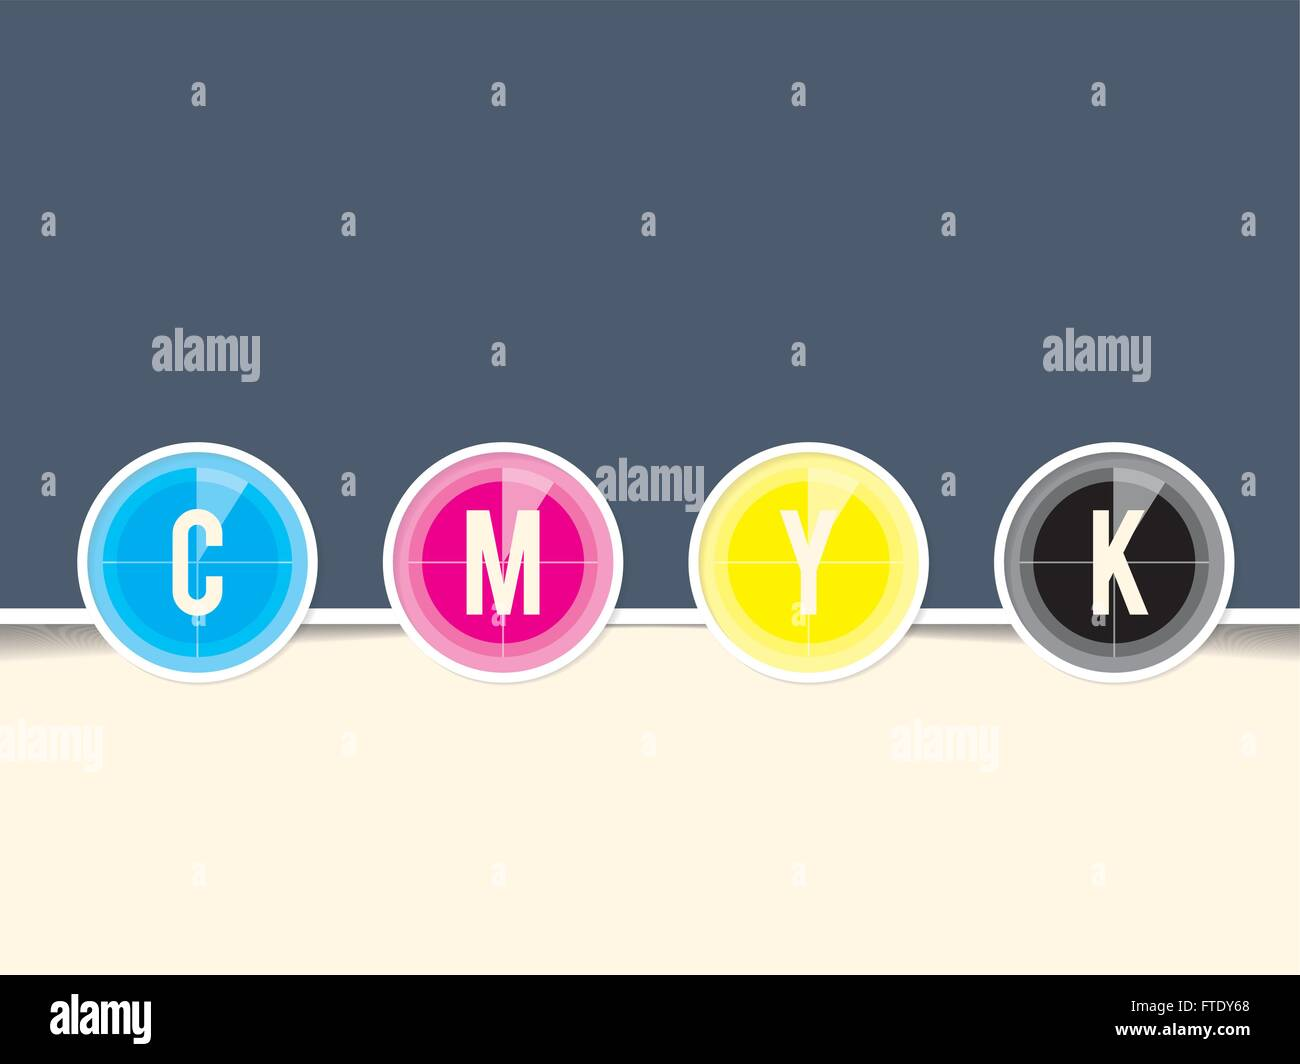 Cmyk background template with countdown design and copy space - Stock Image